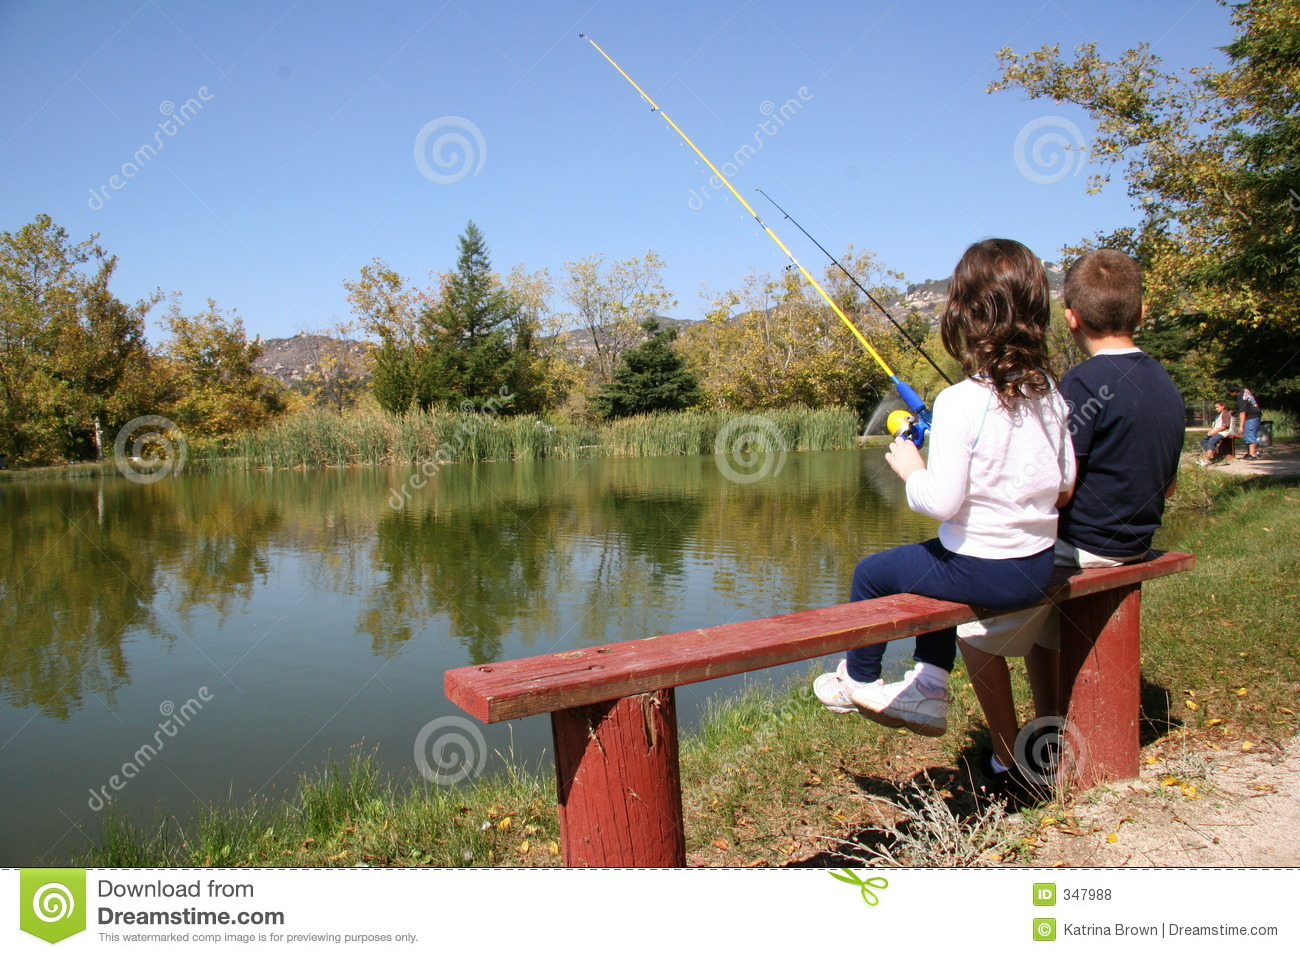 Kids fishing royalty free stock photos image 347988 for Fishing times free